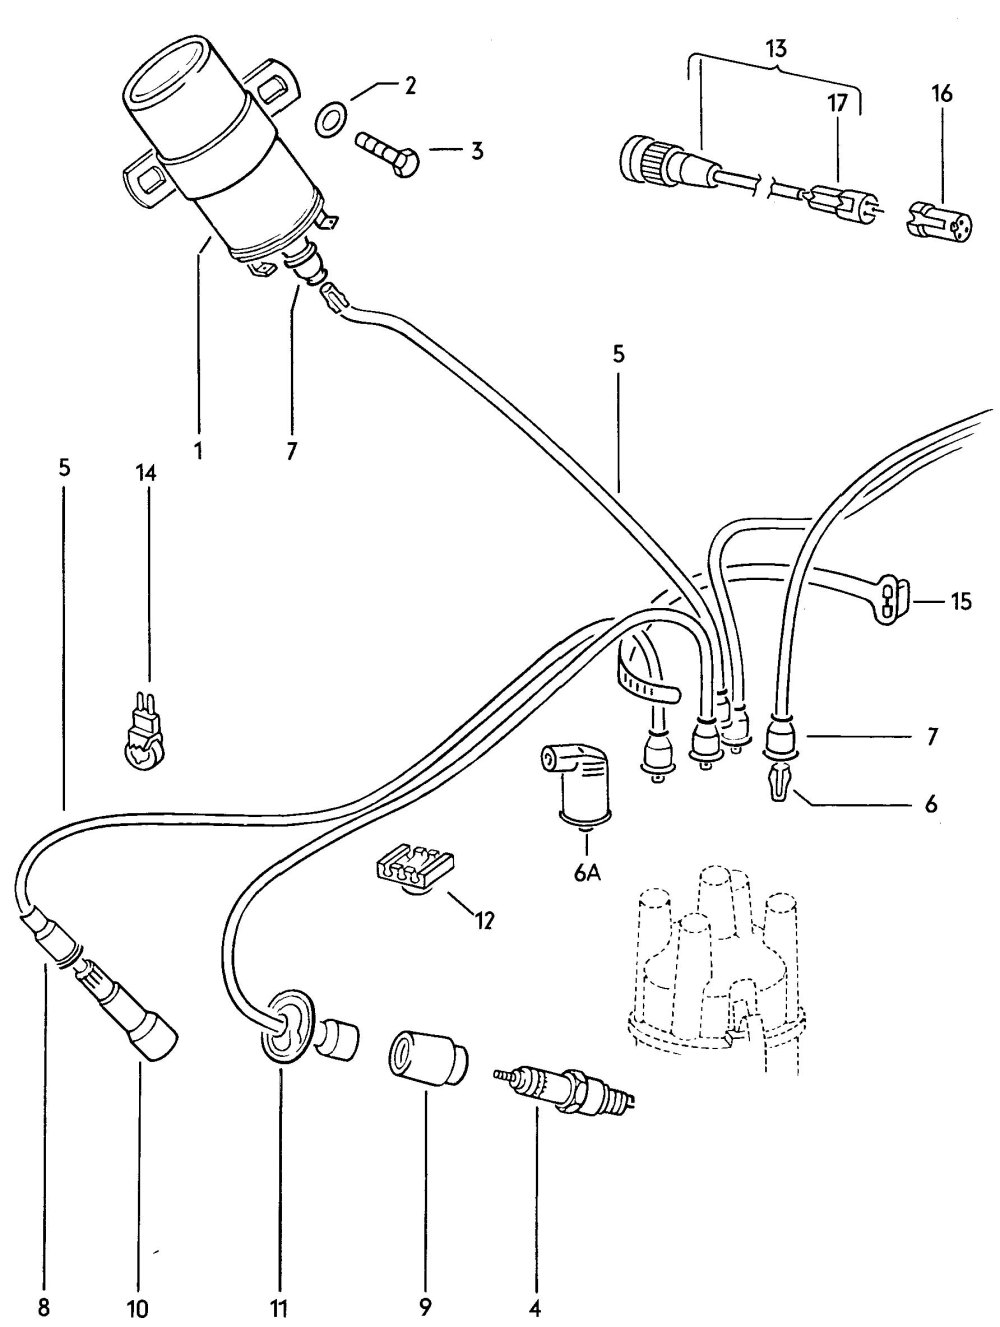 medium resolution of vw distributor coil wiring wiring diagram official vw beetle ignition coil wiring vw beetle ignition coil wiring